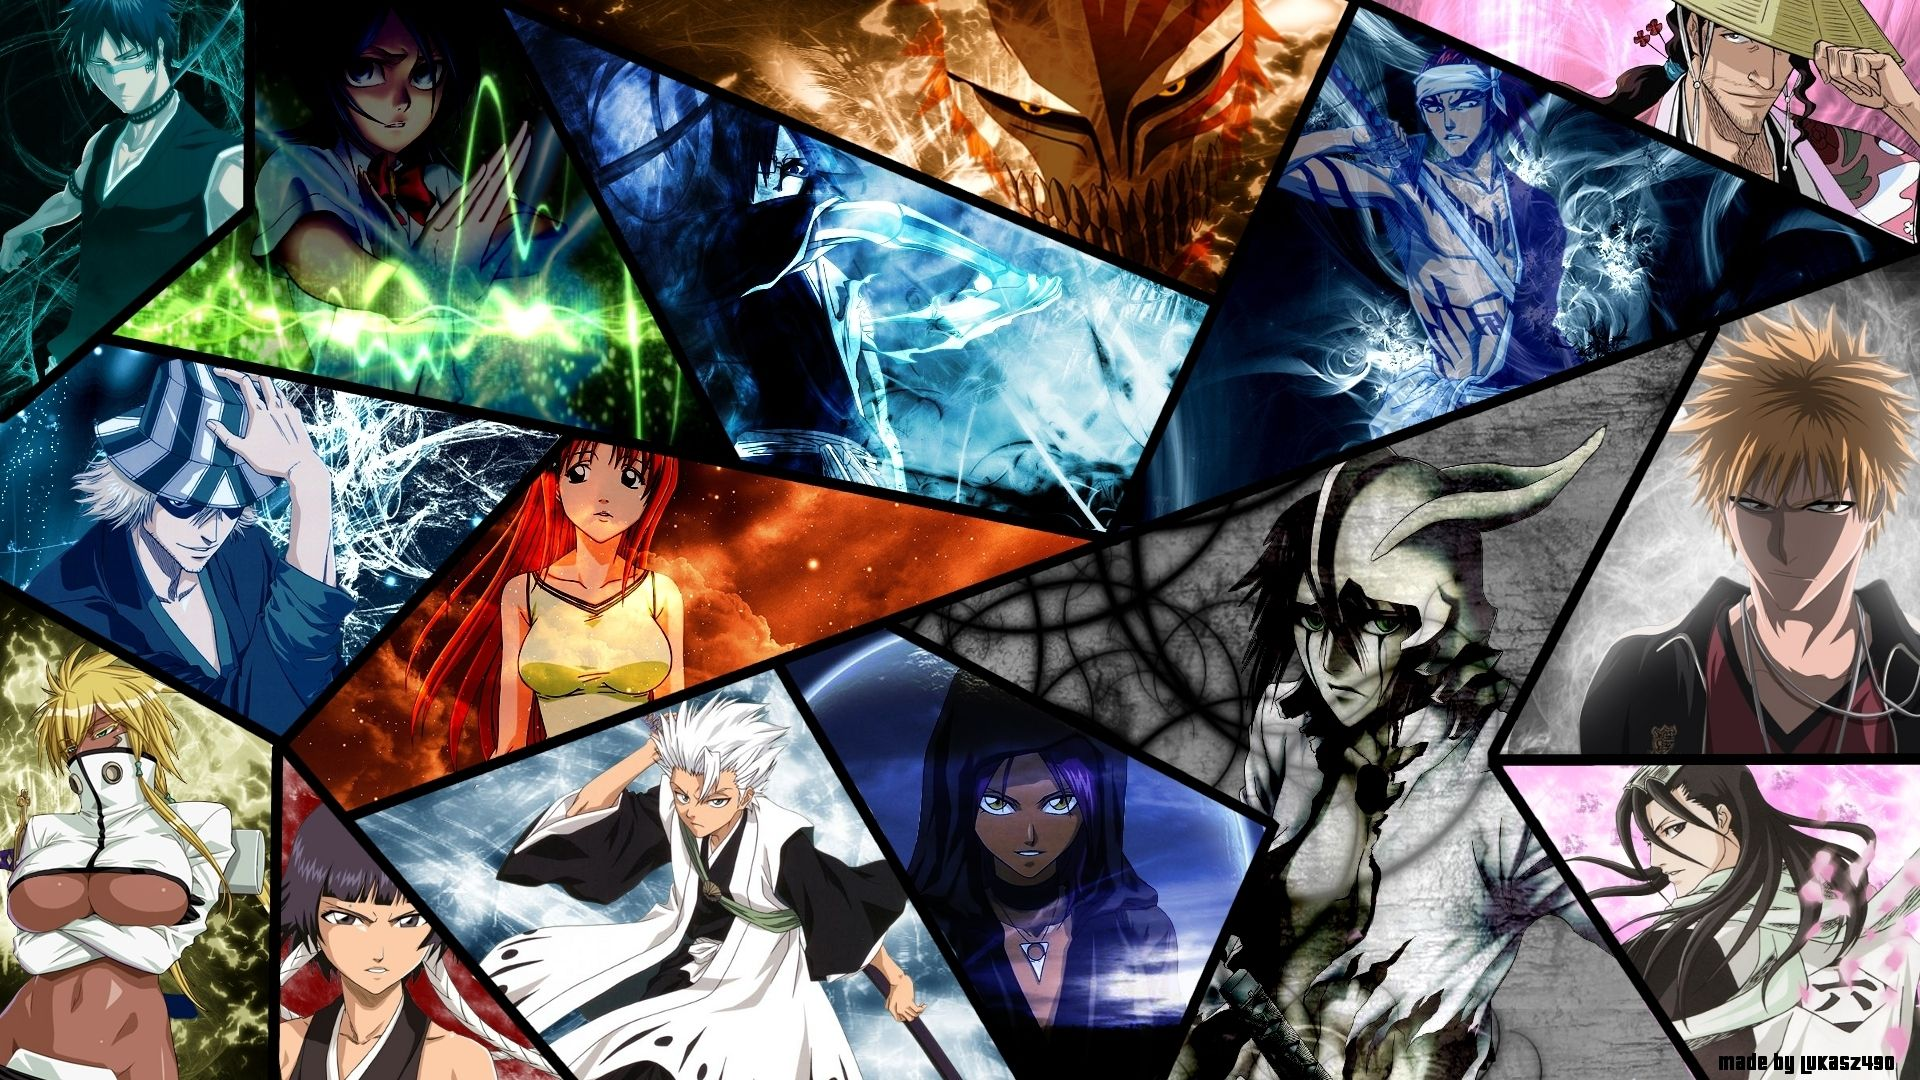 Bleach Anime Wallpapers Top Free Bleach Anime Backgrounds